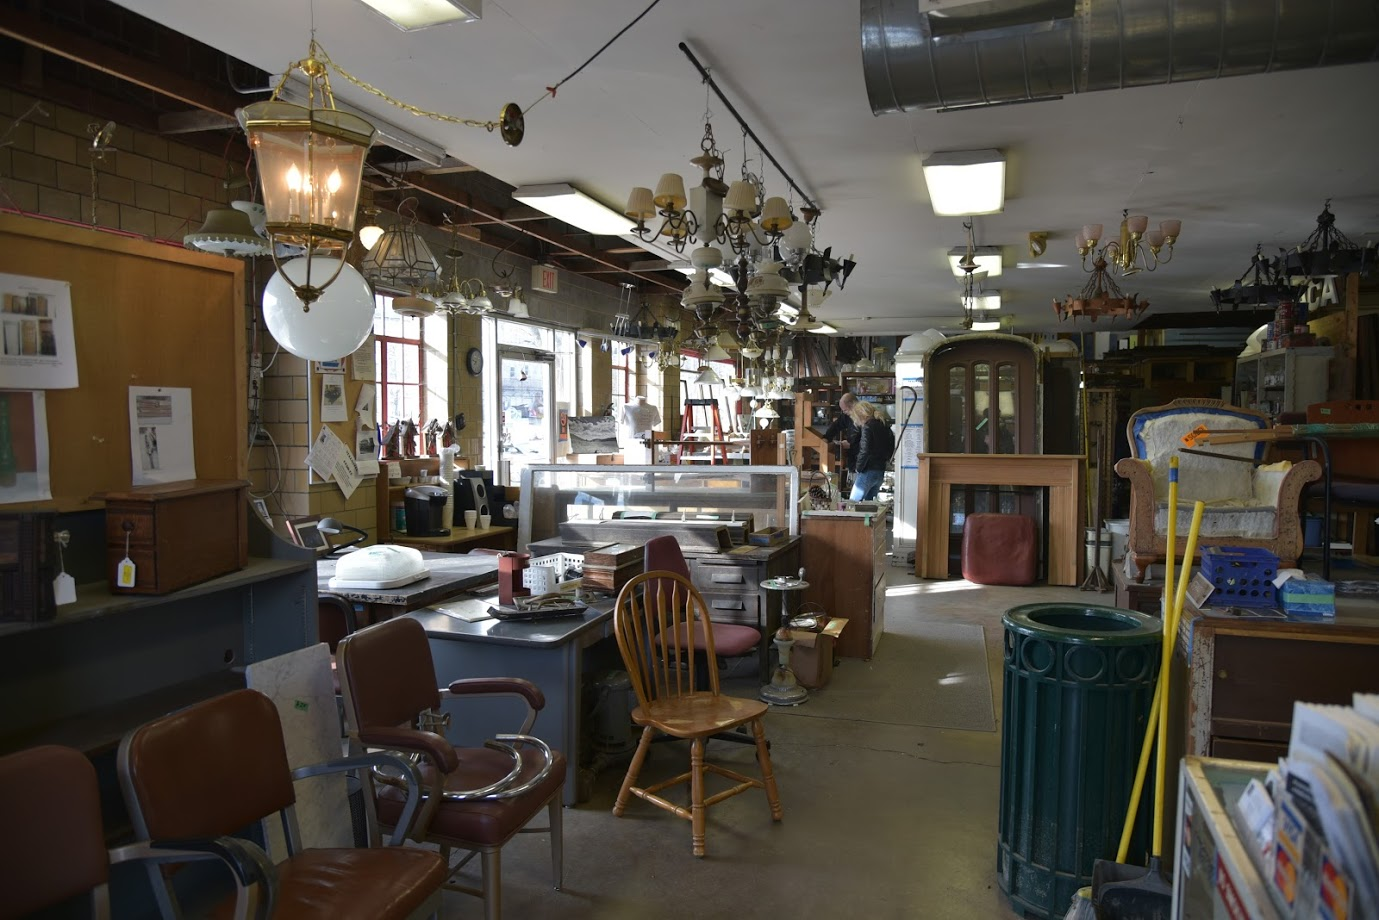 Best Kitchen Gallery: Architectural Salvage Warehouse Pacacc Org of Architectural Salvage  on rachelxblog.com